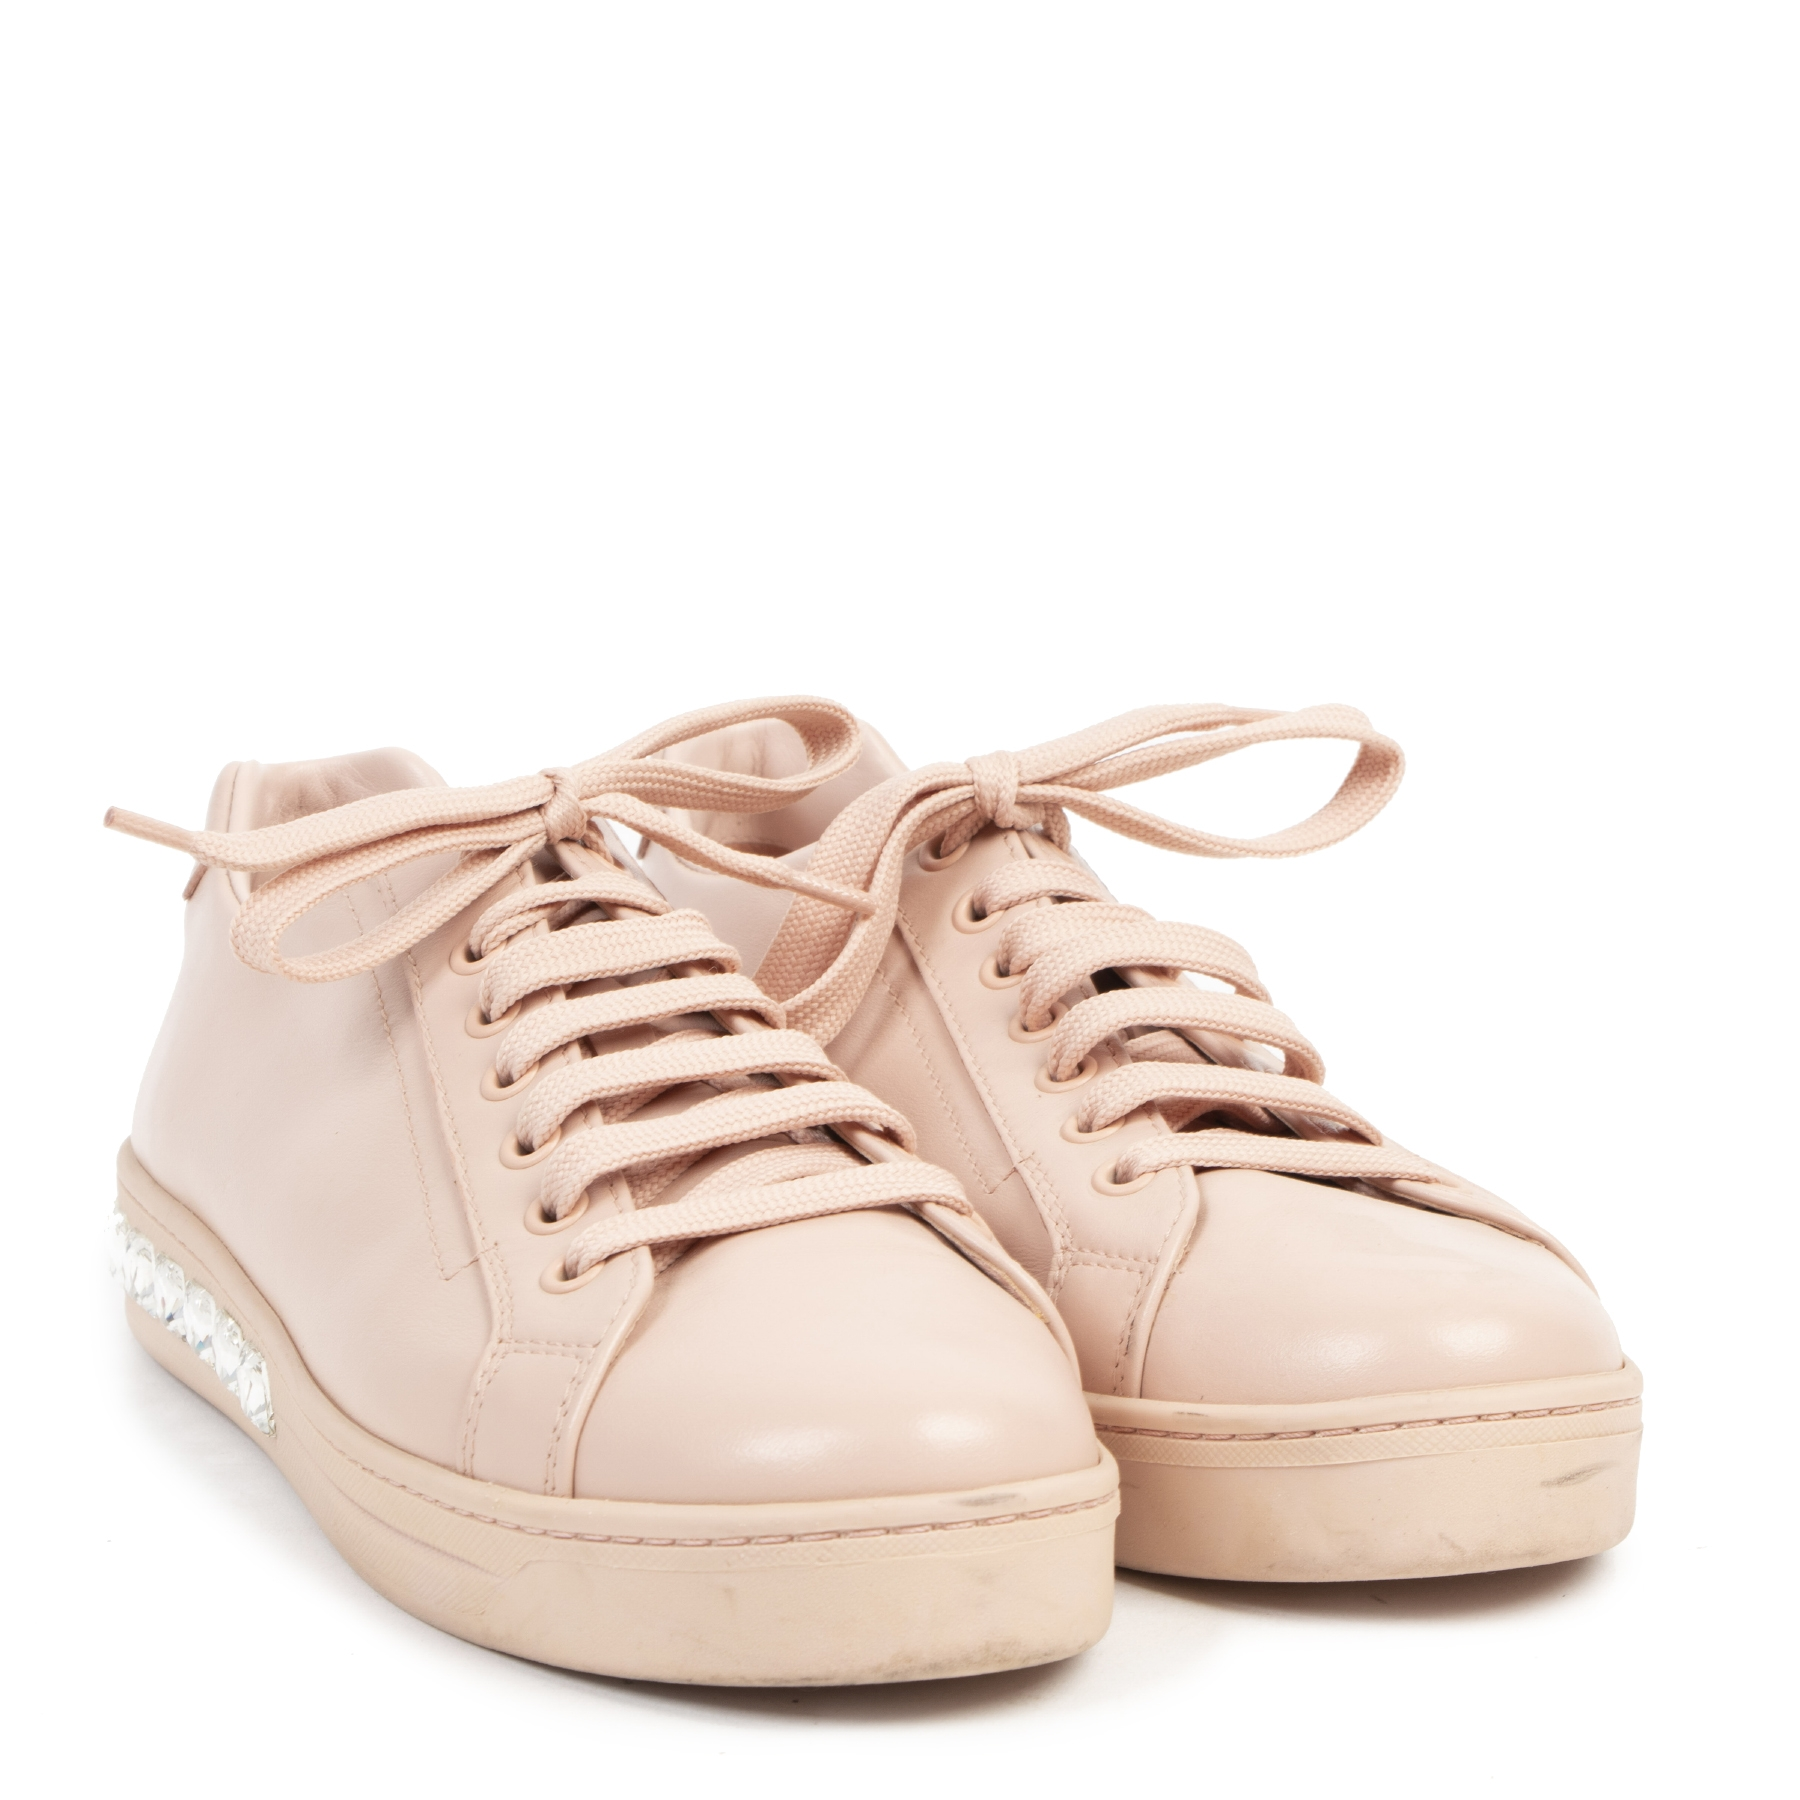 Authentieke tweedehands vintage Prada Pink Leather Sneaker With Diamonds - Size 38,5 koop online webshop LabelLOV